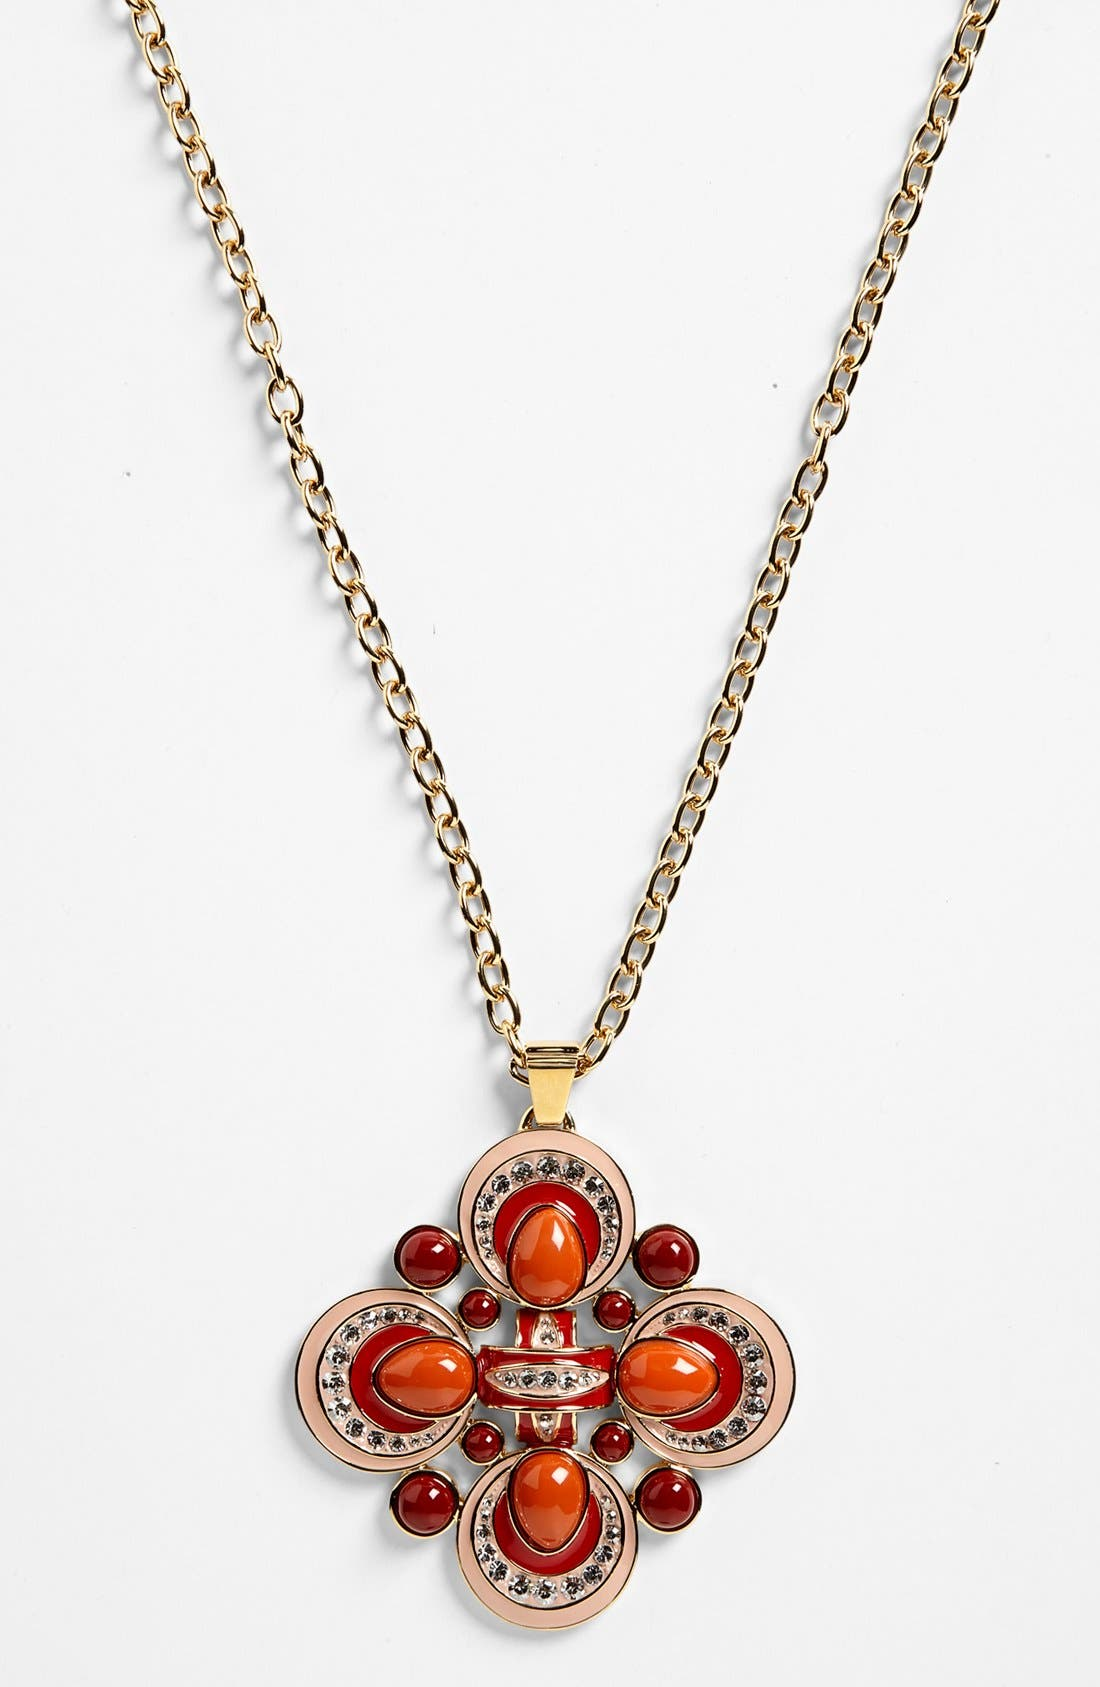 Alternate Image 1 Selected - Tory Burch 'Alia' Pendant Necklace